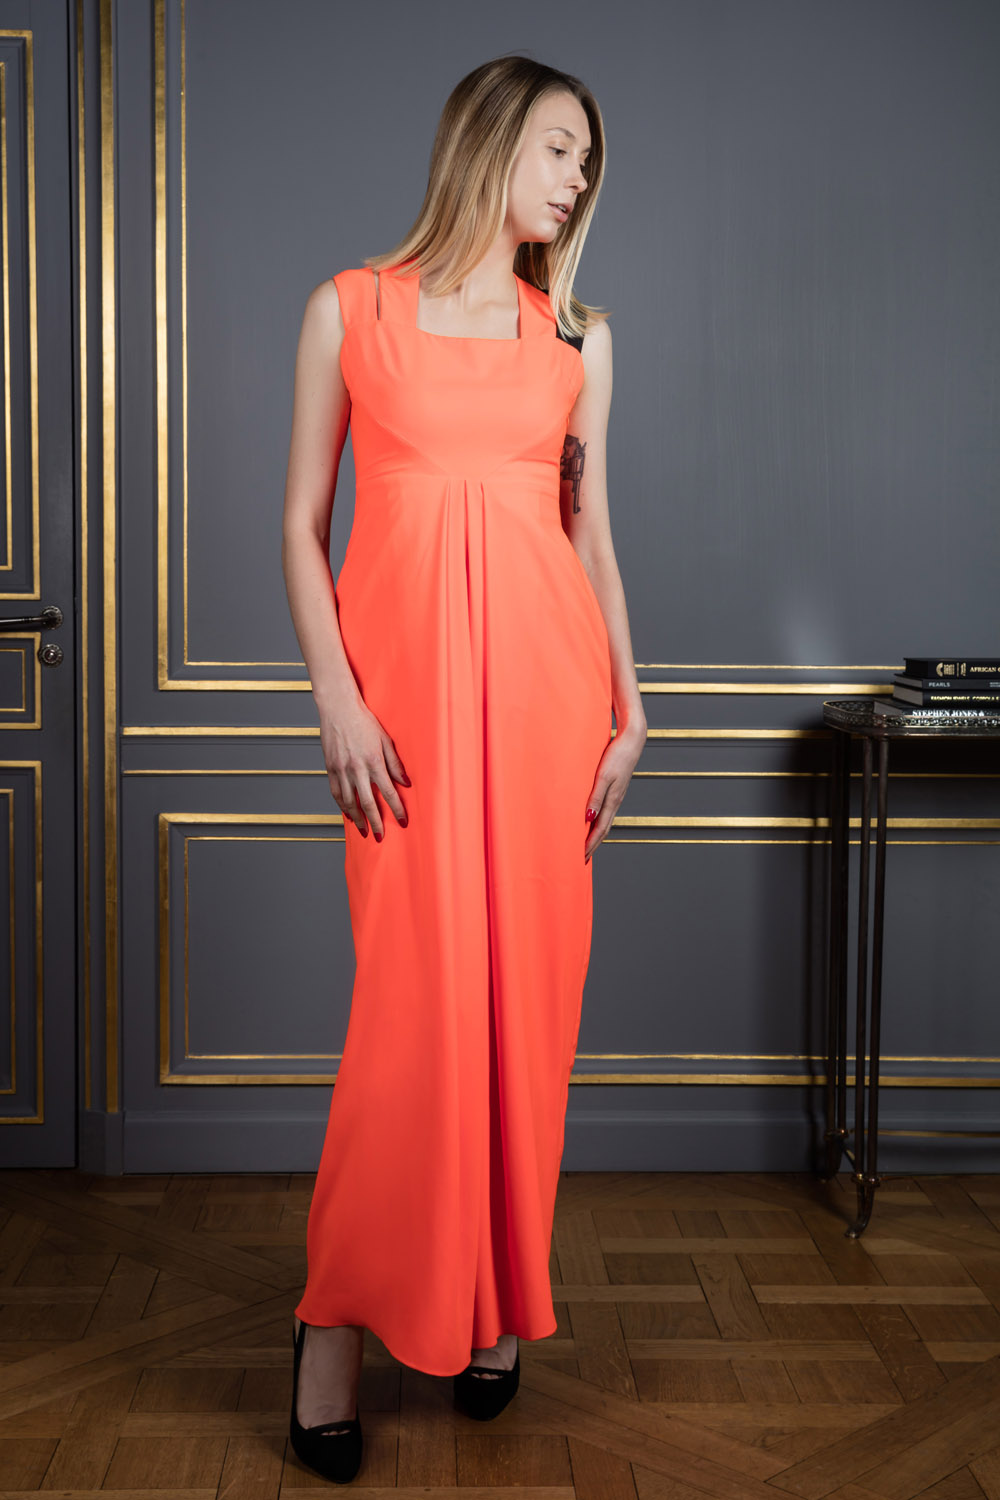 Shoulderless orange dress